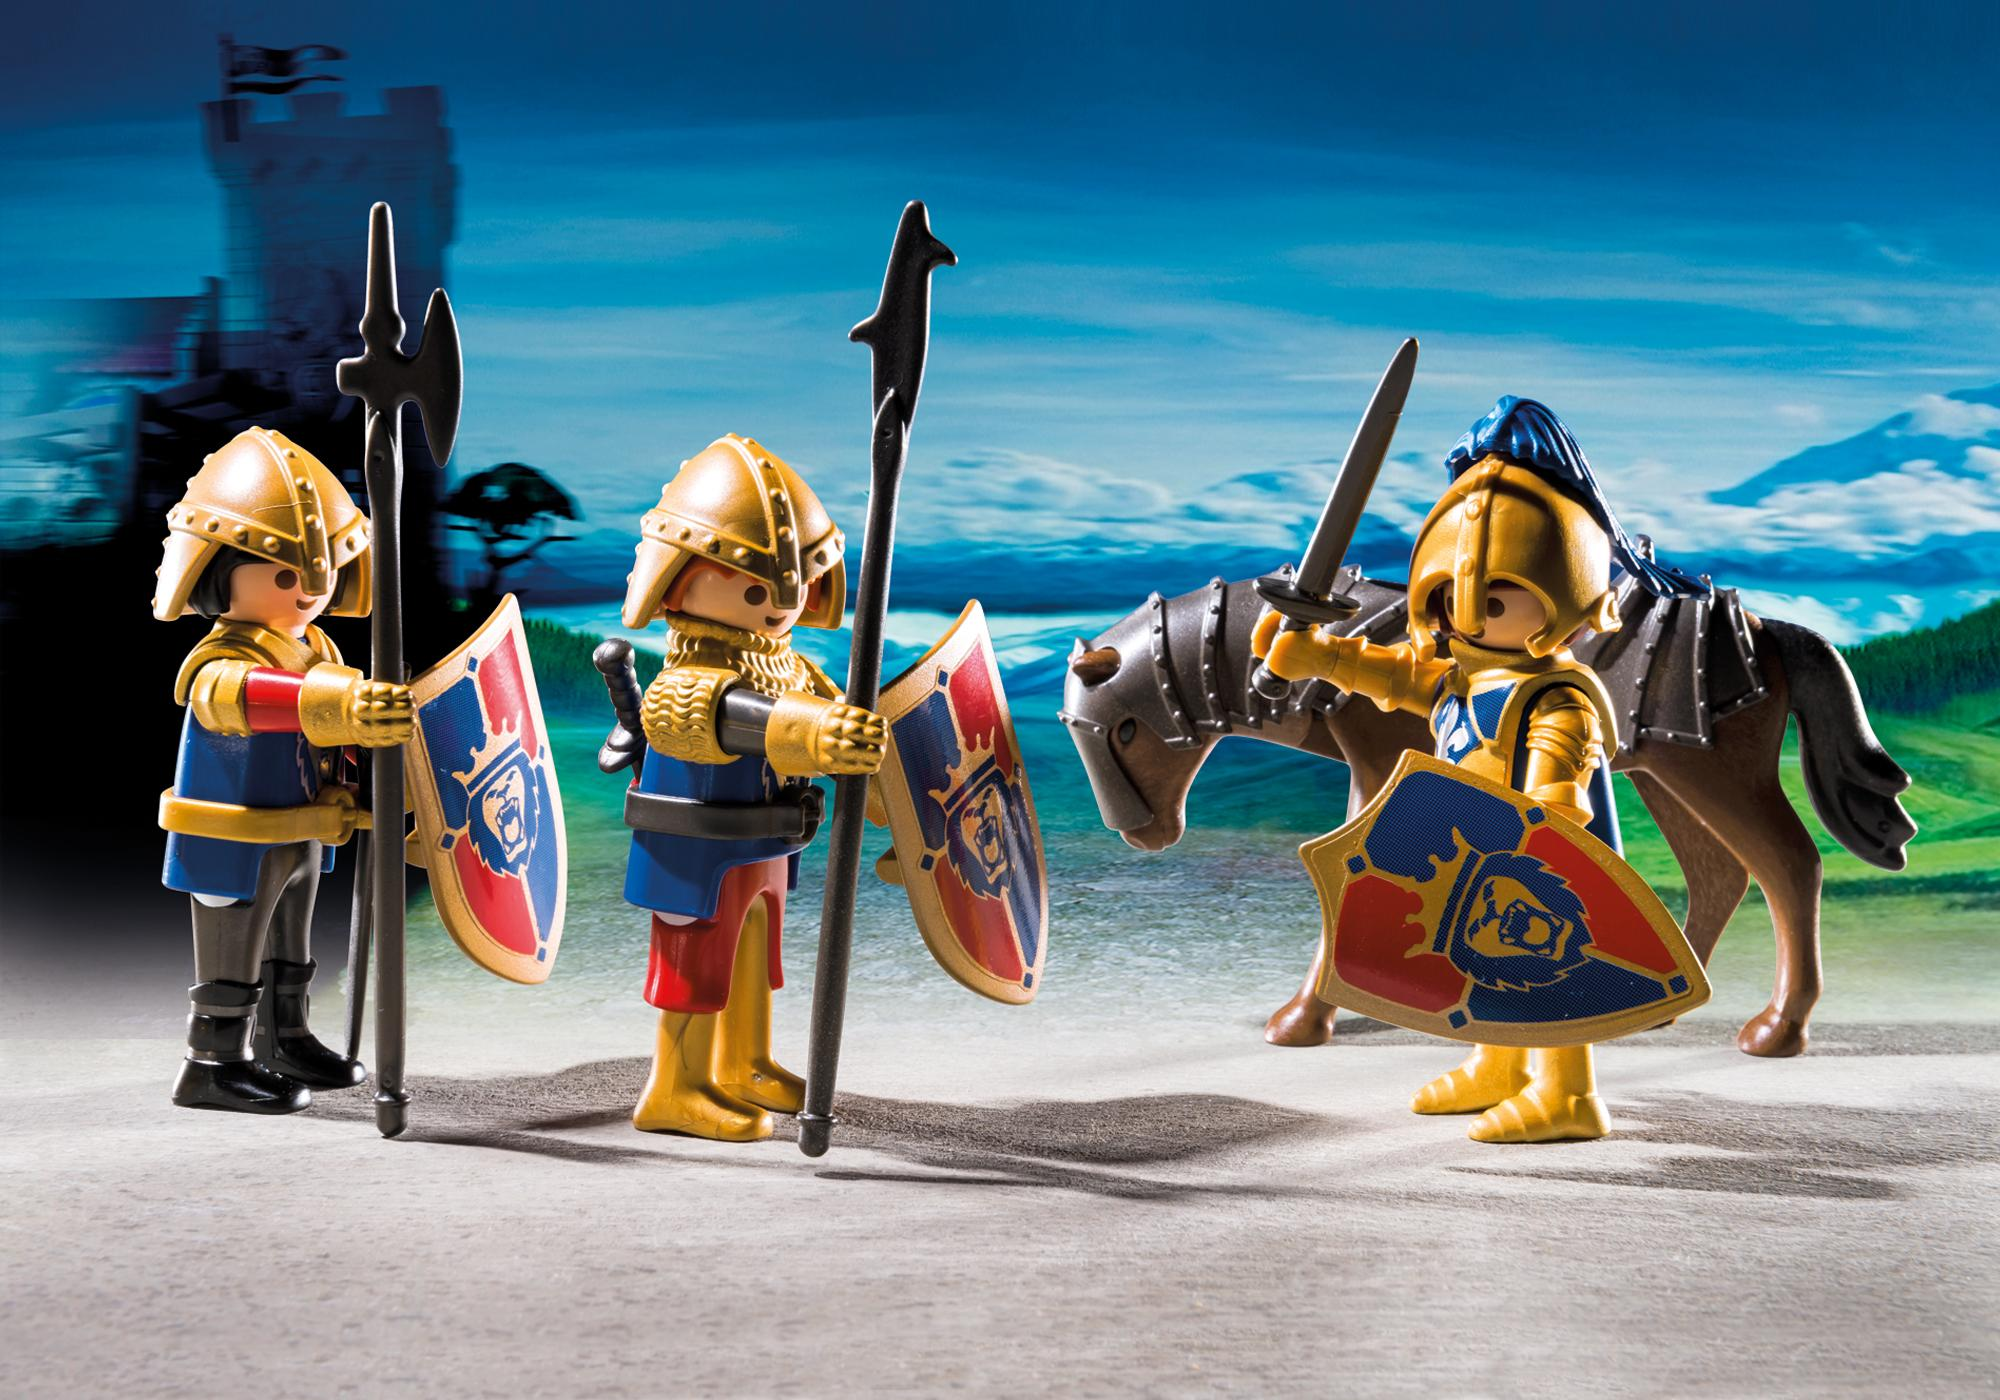 http://media.playmobil.com/i/playmobil/6006_product_extra1